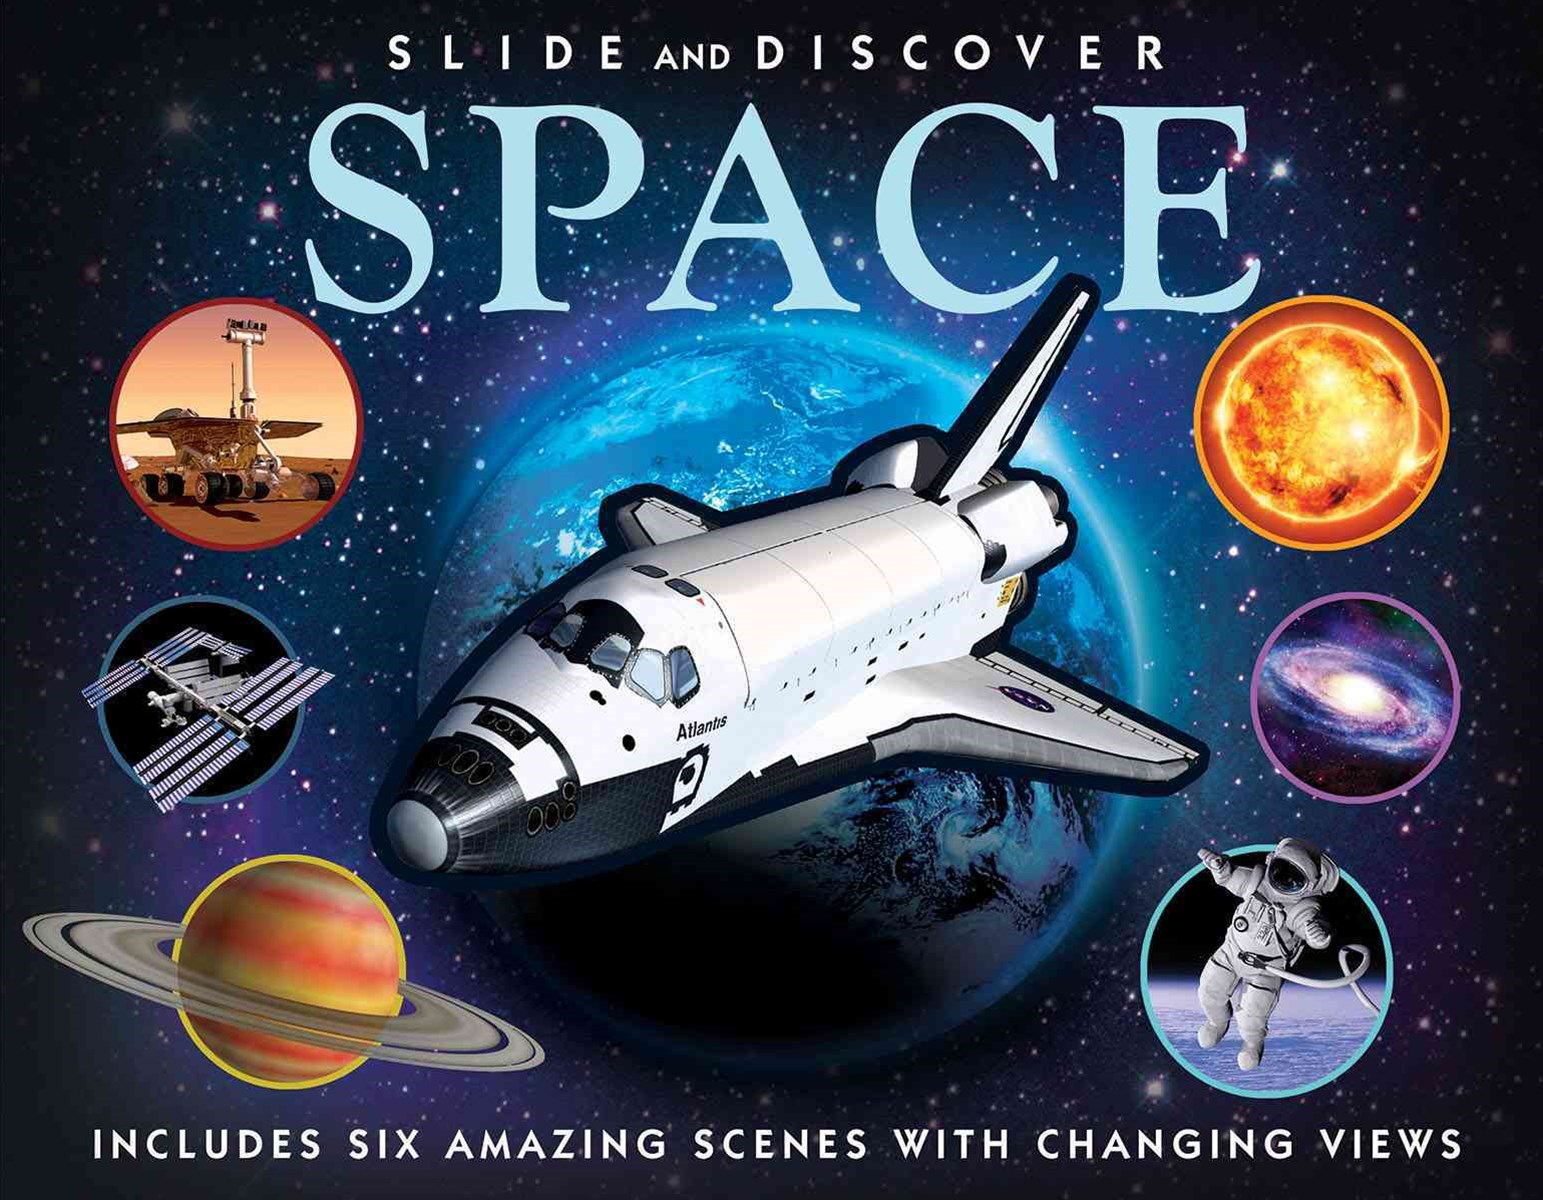 Slide and Discover: Space